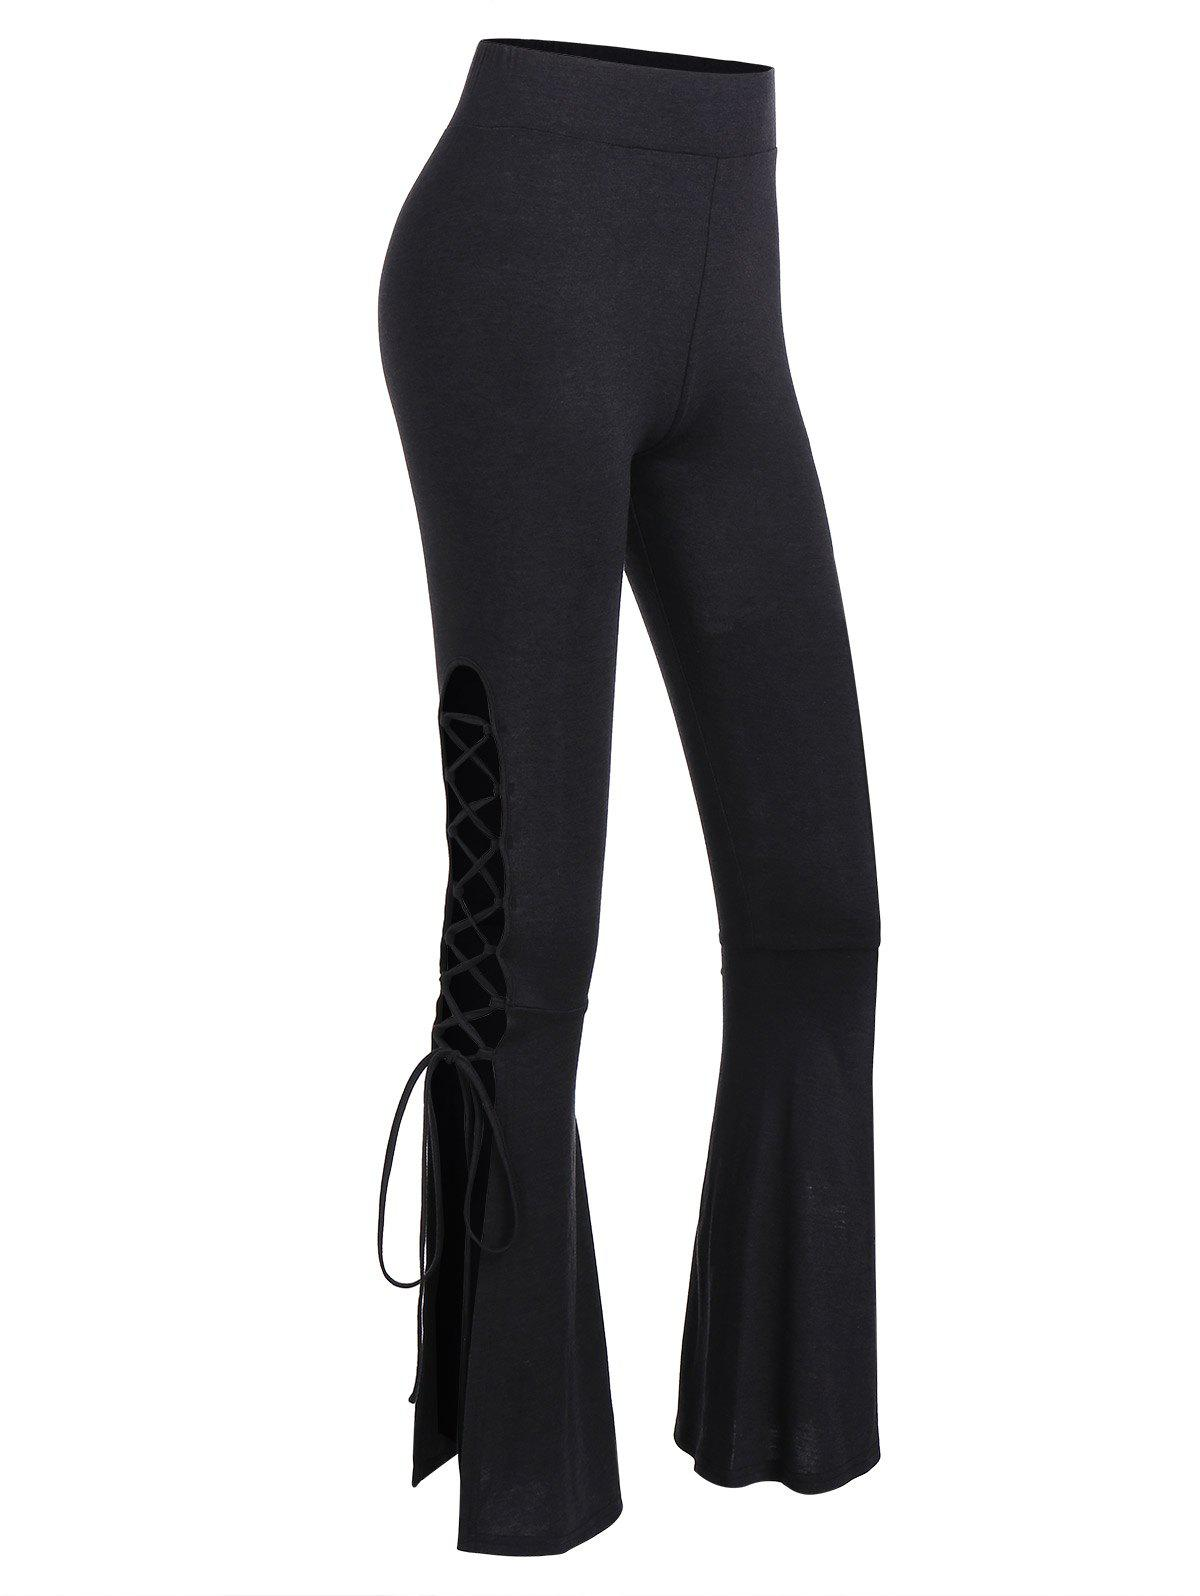 Buy High Waist Lace Up Flare Pants